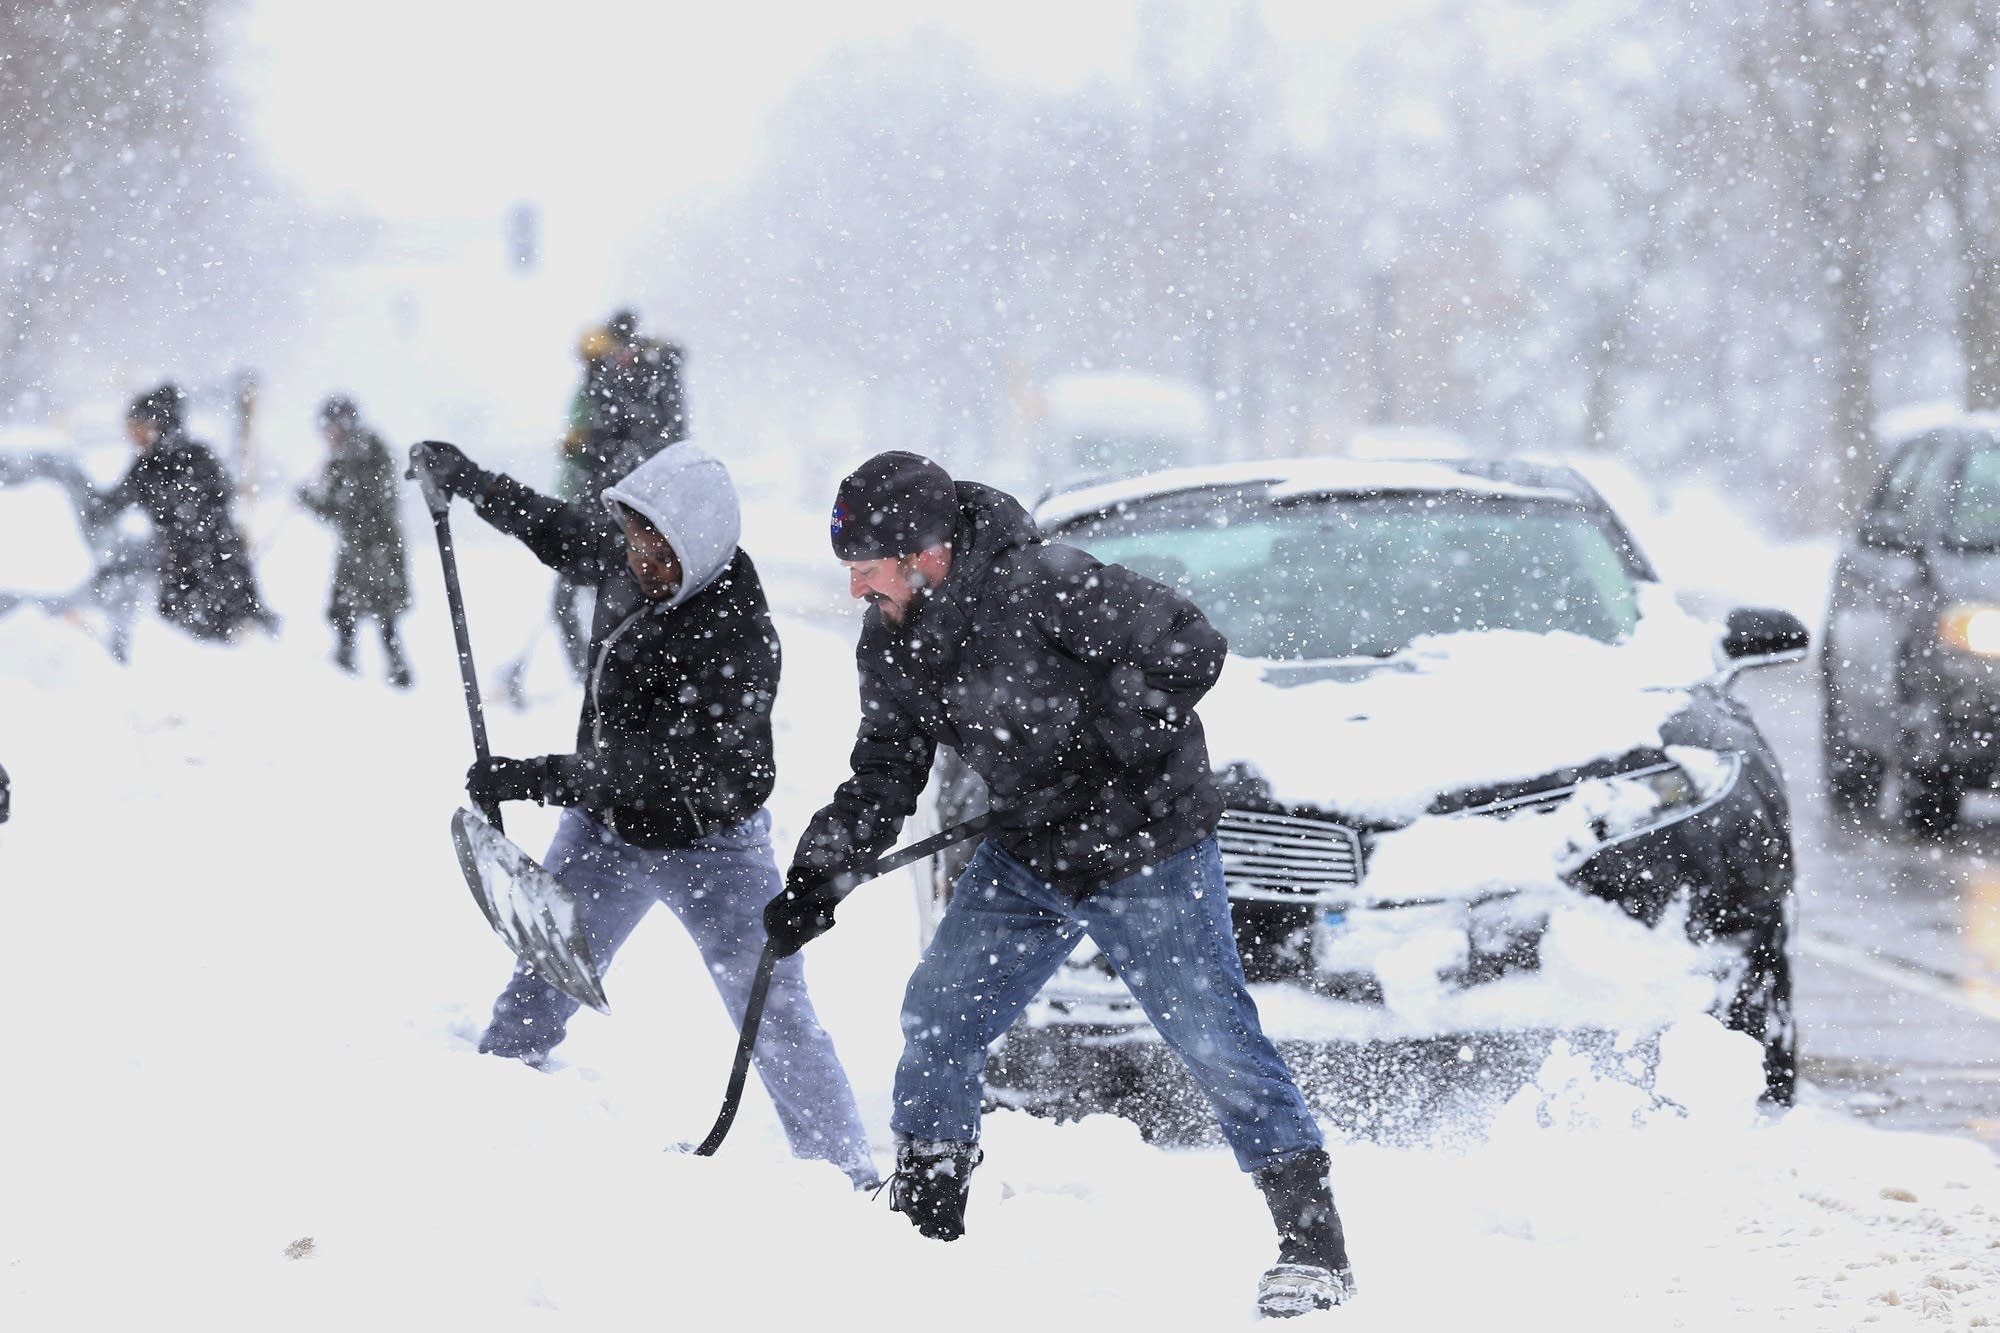 Yes, there is a connection between heavier snowfall and climate change.